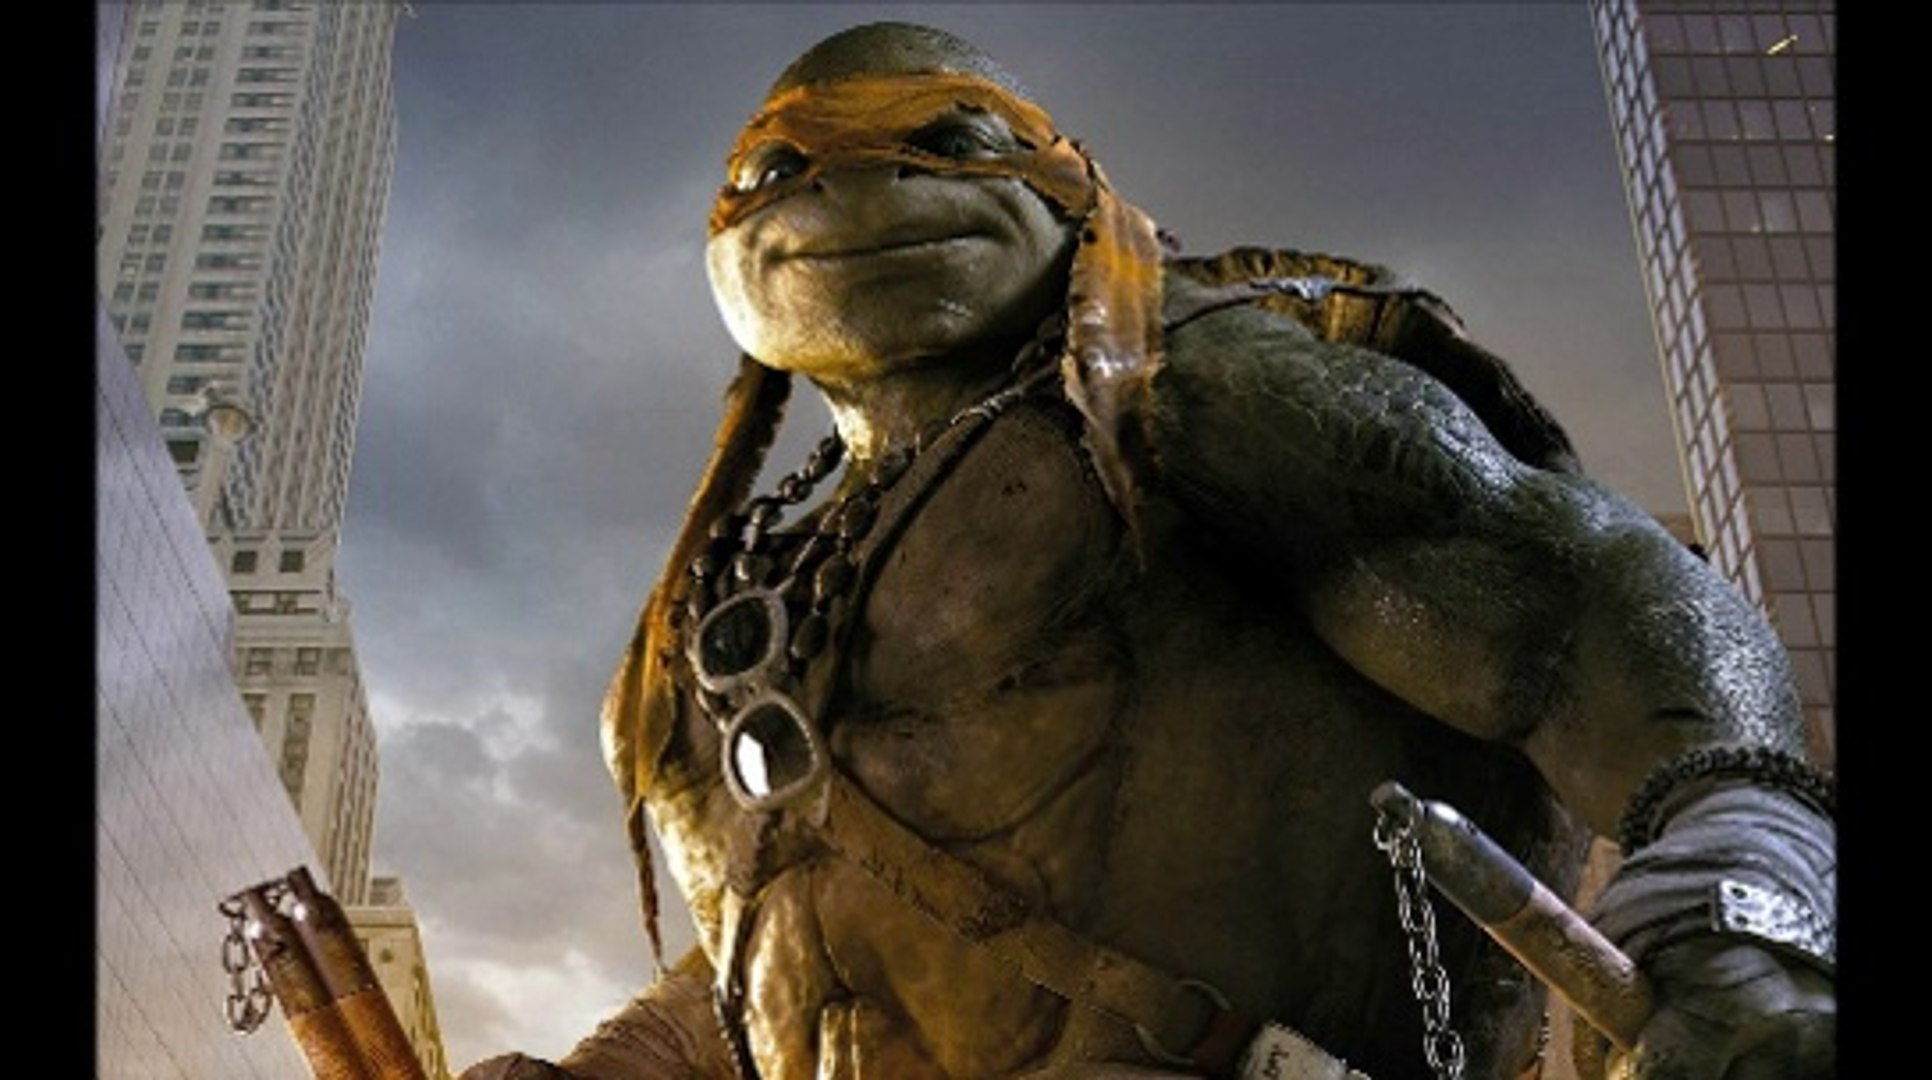 Watch Teenage Mutant Ninja Turtles (2014)/Download Teenage Mutant Ninja Turtles (2014)